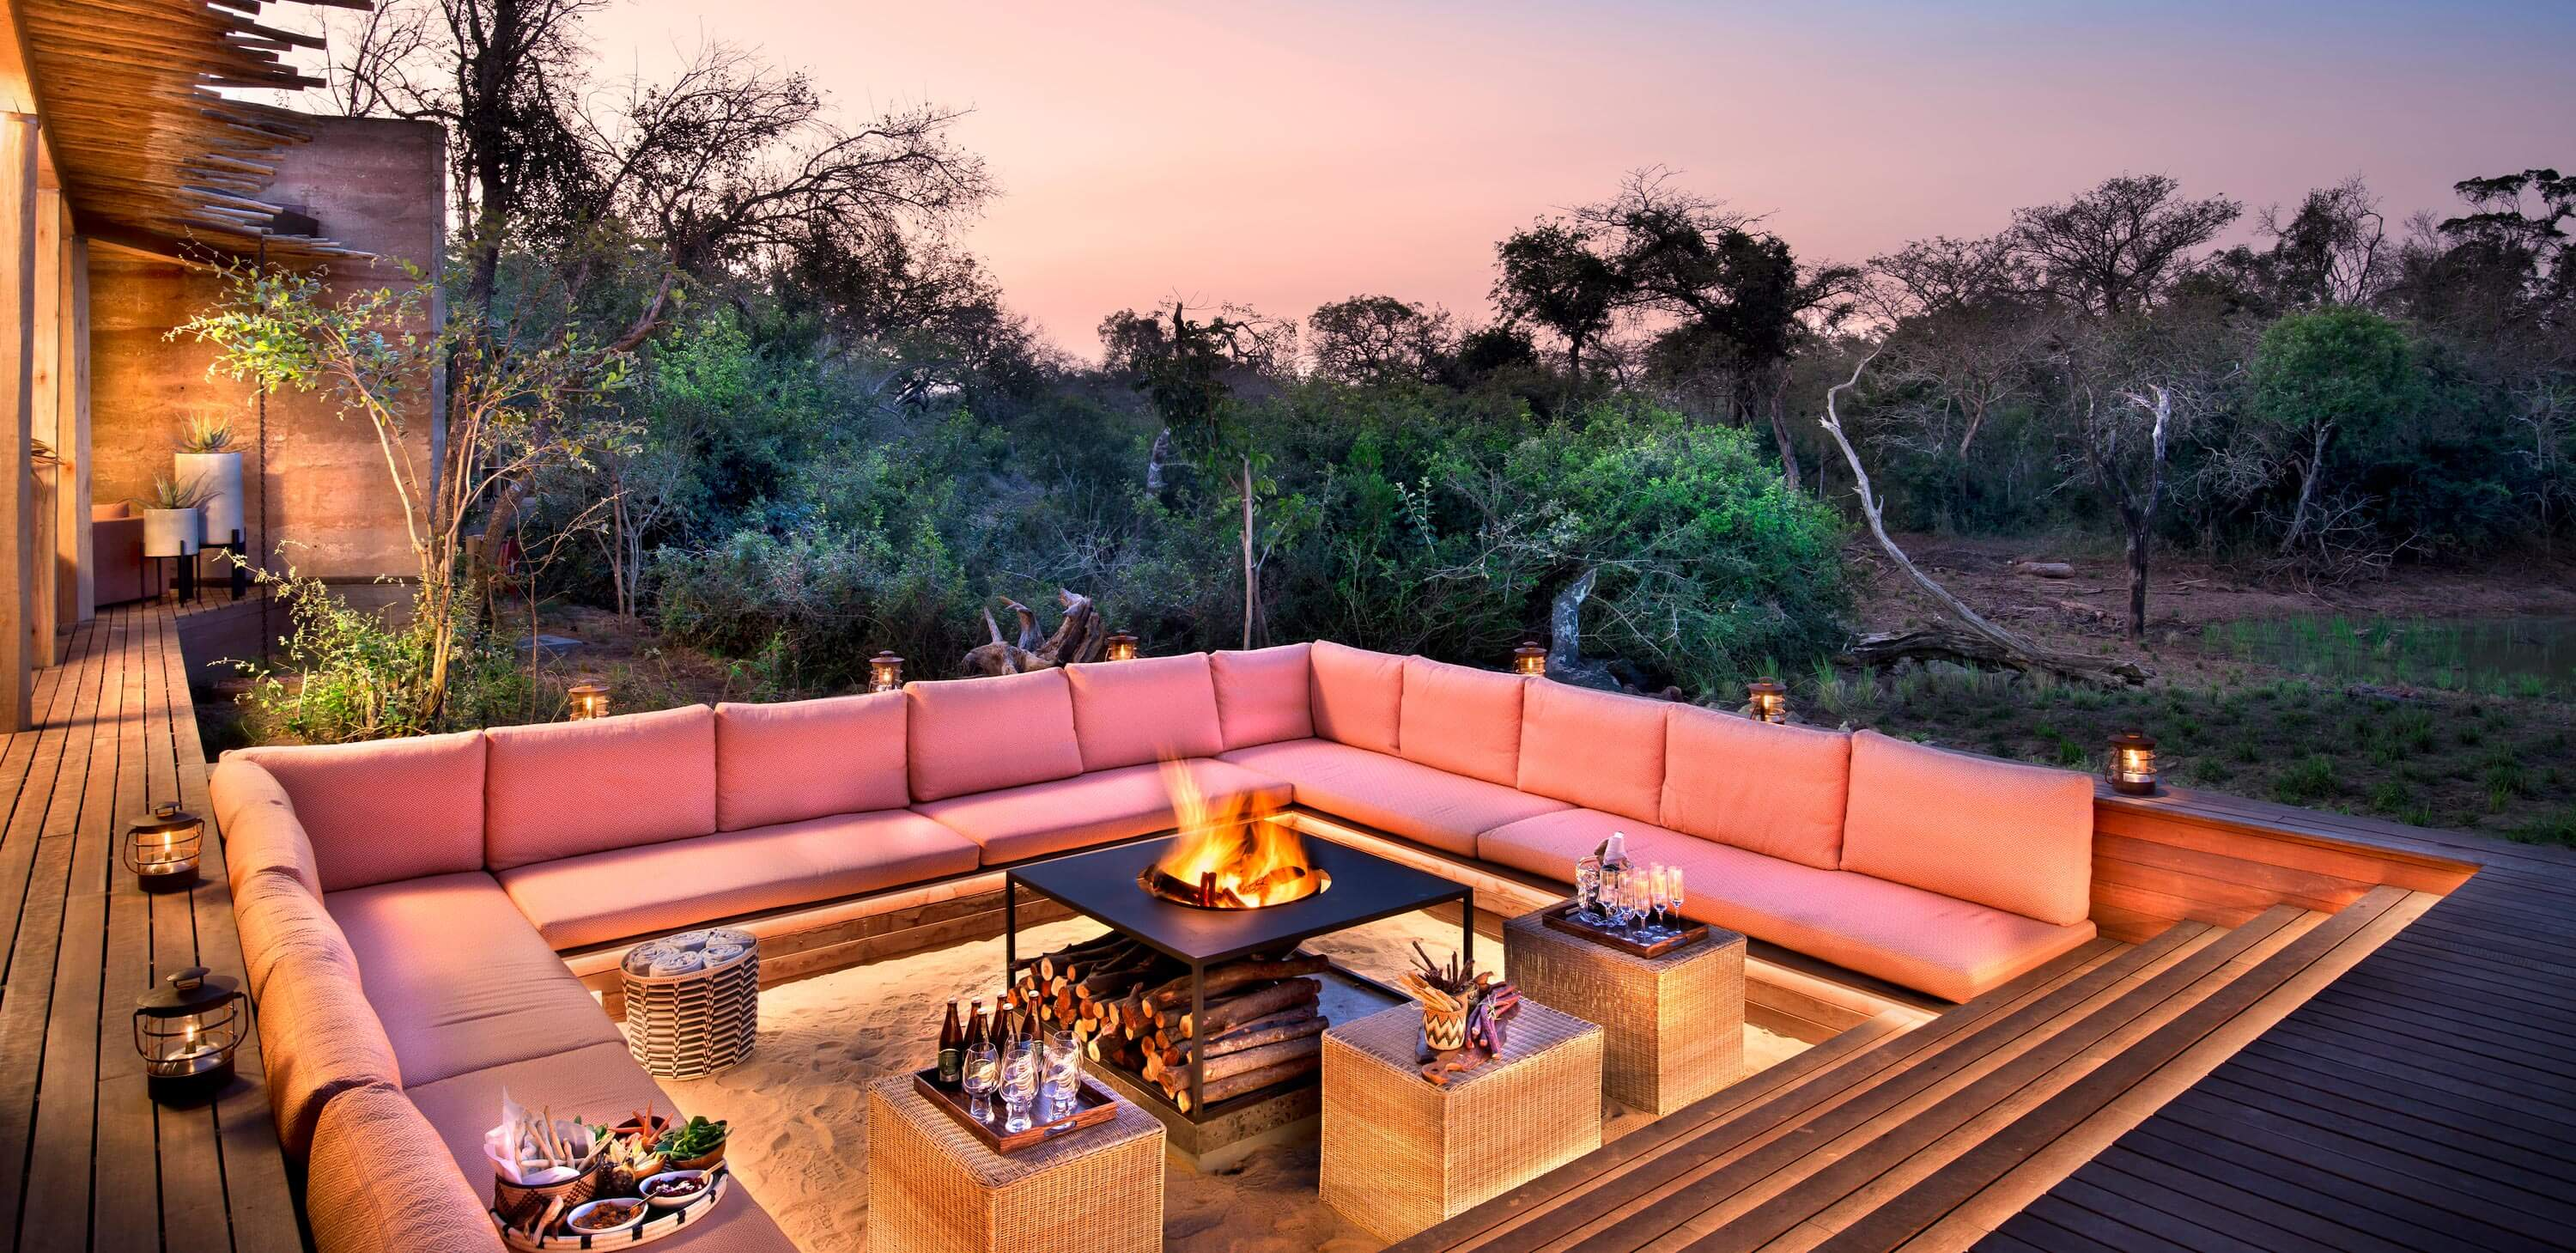 andBeyond Phinda Homestead - Fire pit and sunken lounge